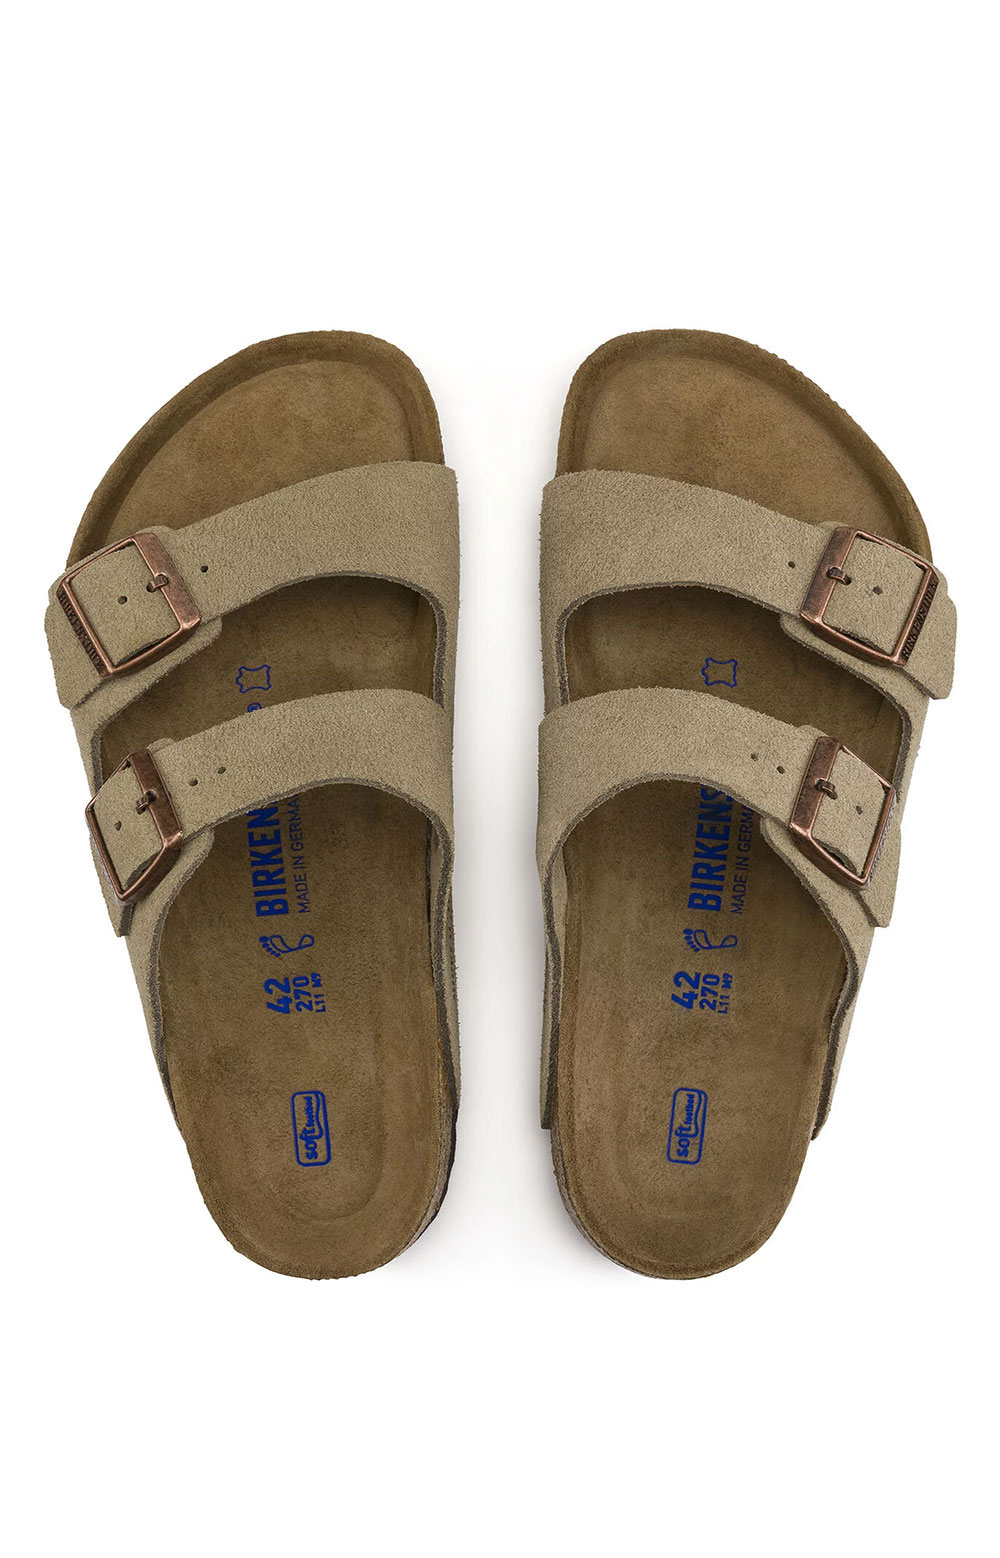 (0951303) Arizona Soft Foodbed Sandals - Taupe 7